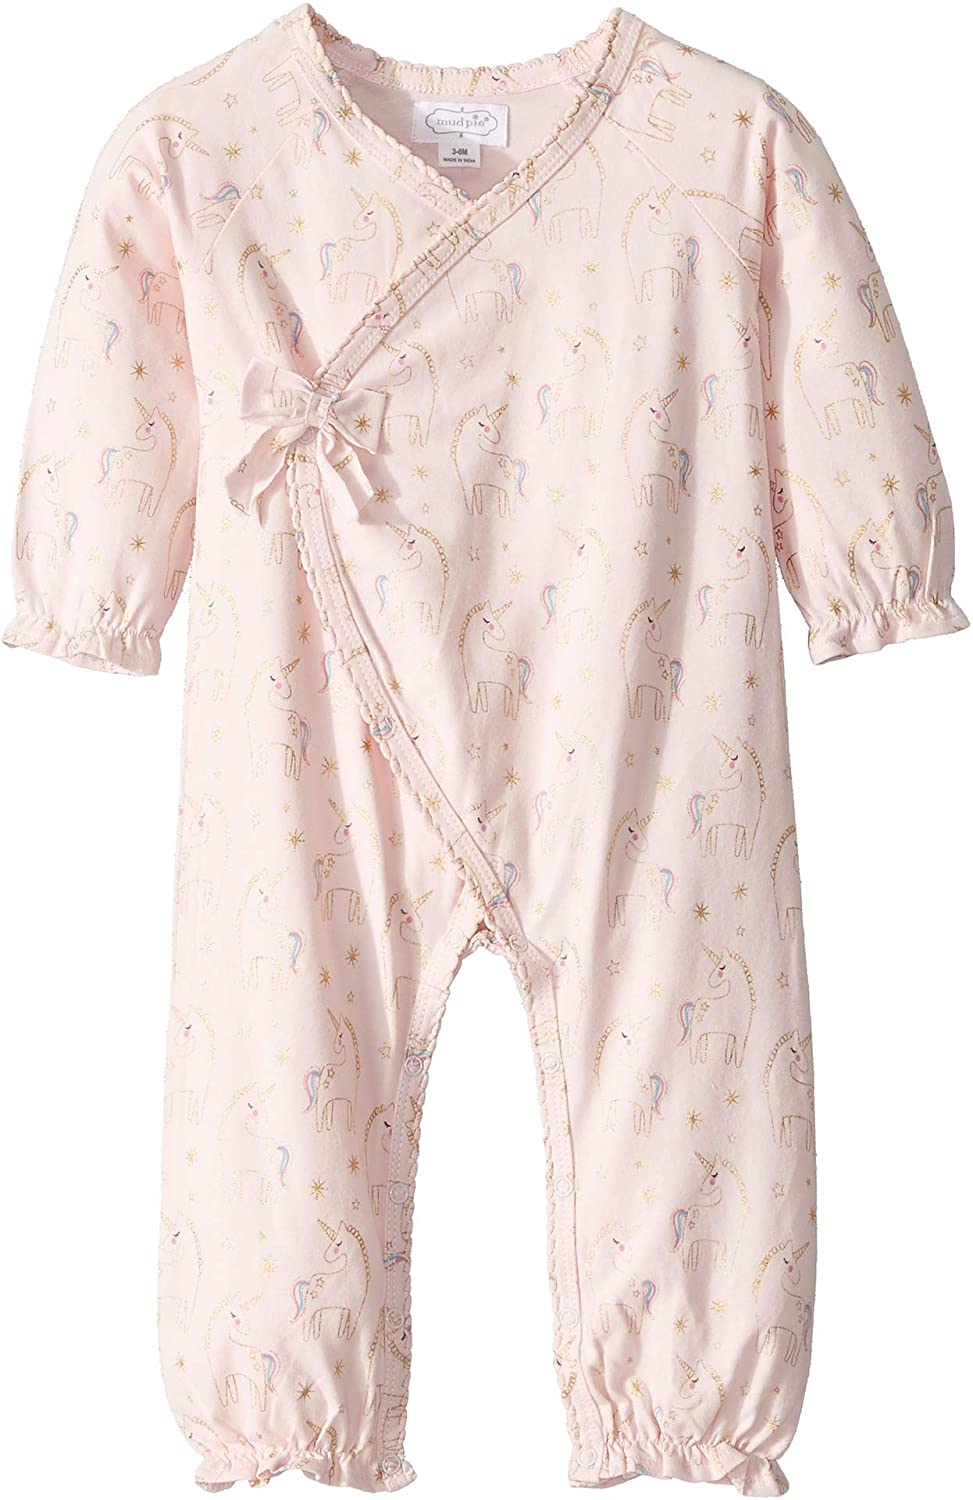 Mud Pie Baby Girls Unicorn Print Kimono One-Piece Infant